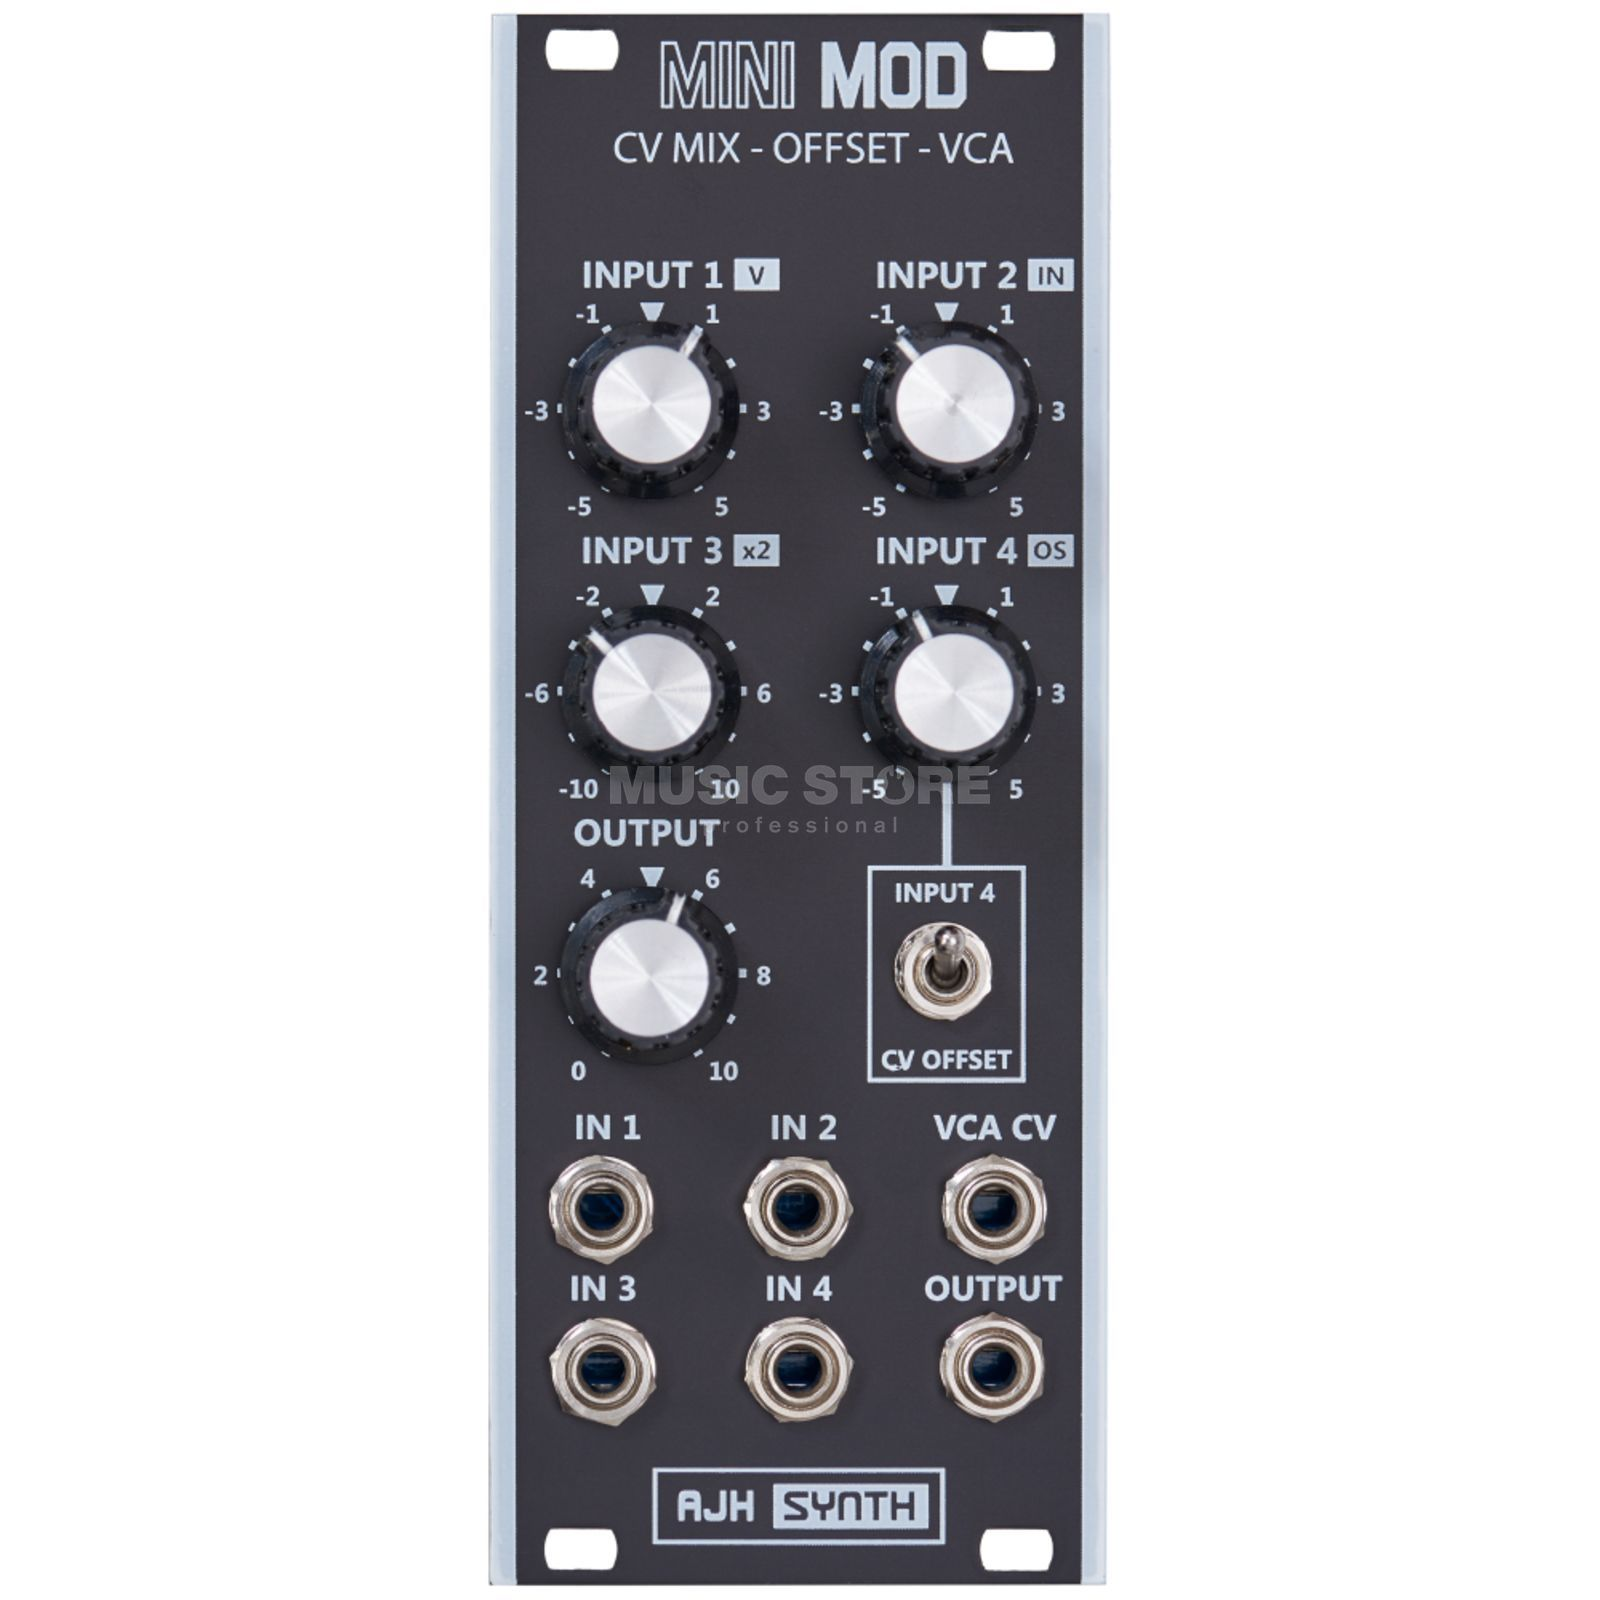 AJH Synth MiniMod CV Mix-Offset-VCA Product Image